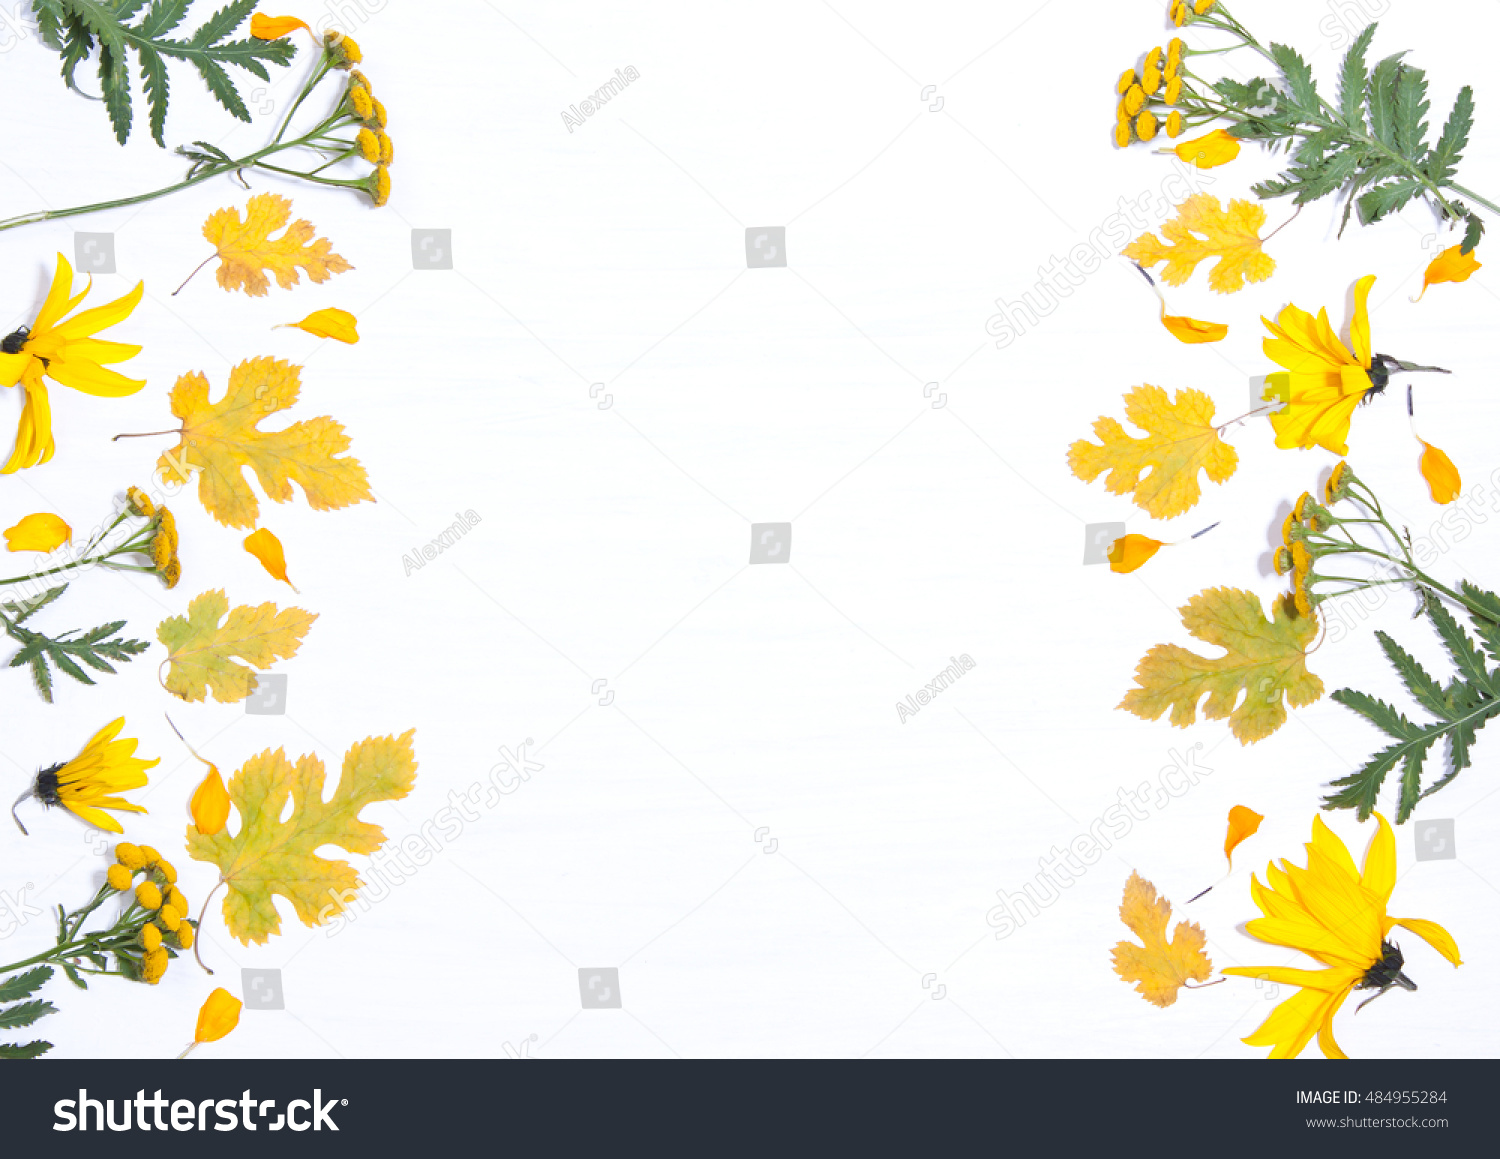 Frame On The Background Of Yellow Flowers And Leavesncept Autumn